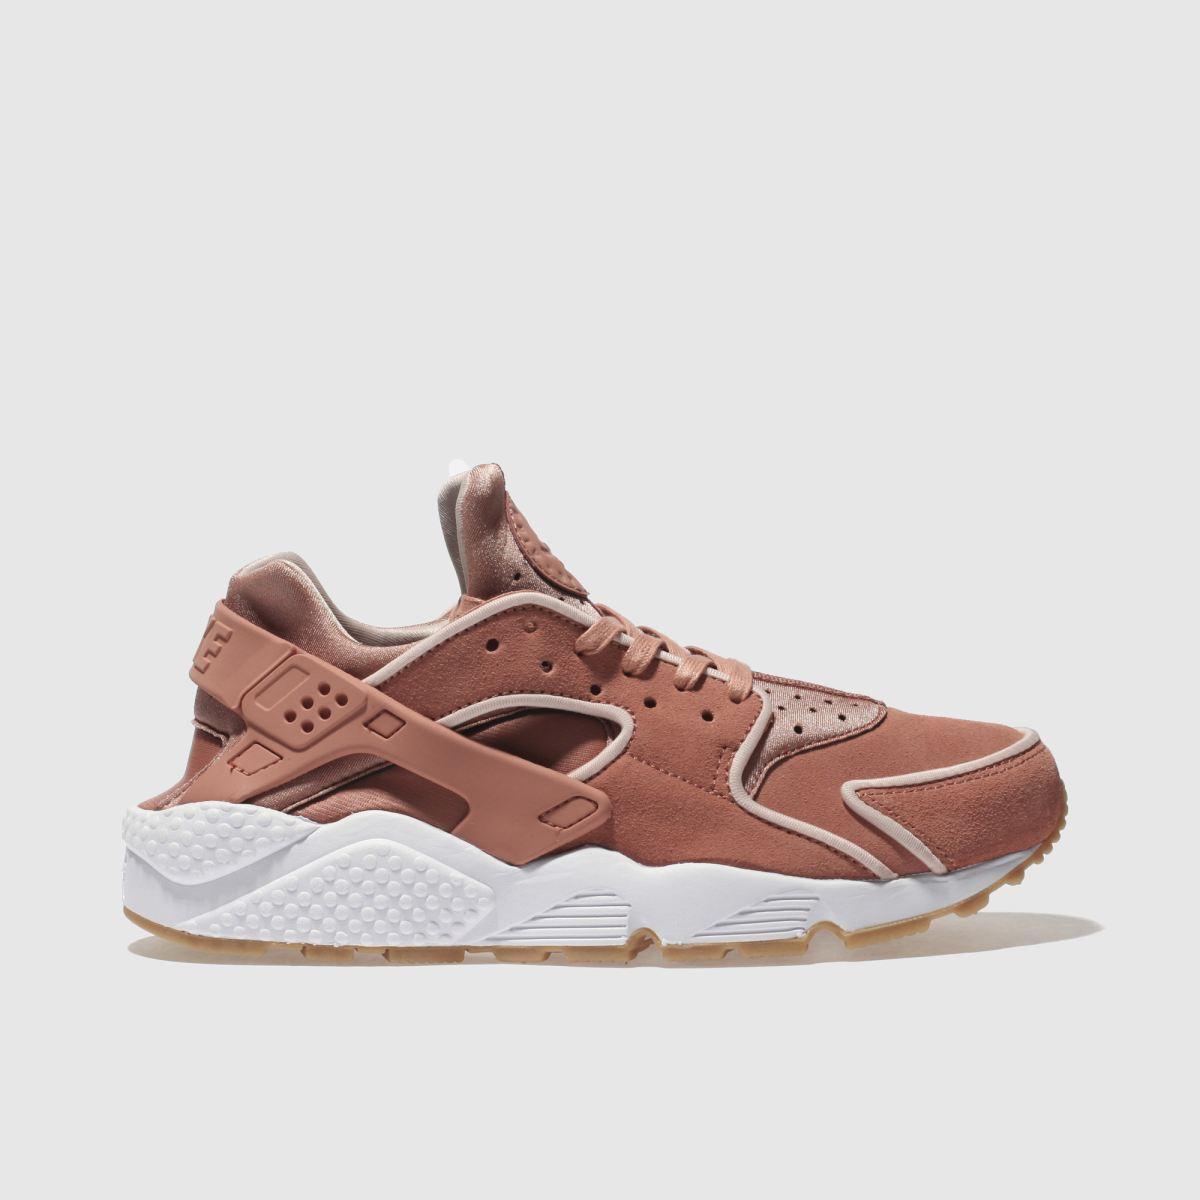 Nike Peach Huarache Run Trainers